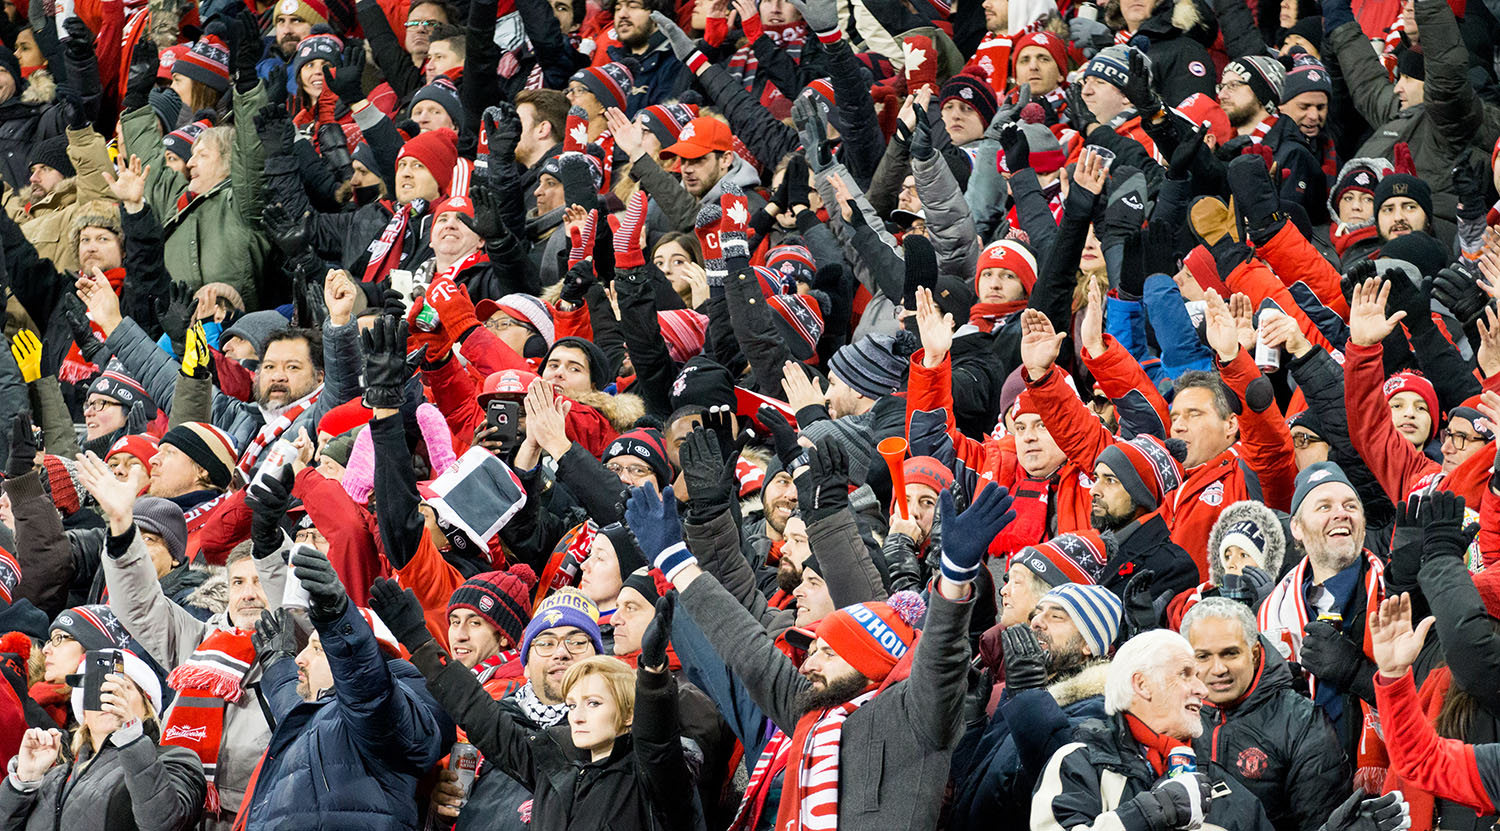 Fans in the east stands doing the thunder clap during the 2017 MLS Cup final.Image by Dennis Marciniak of denMAR Media.